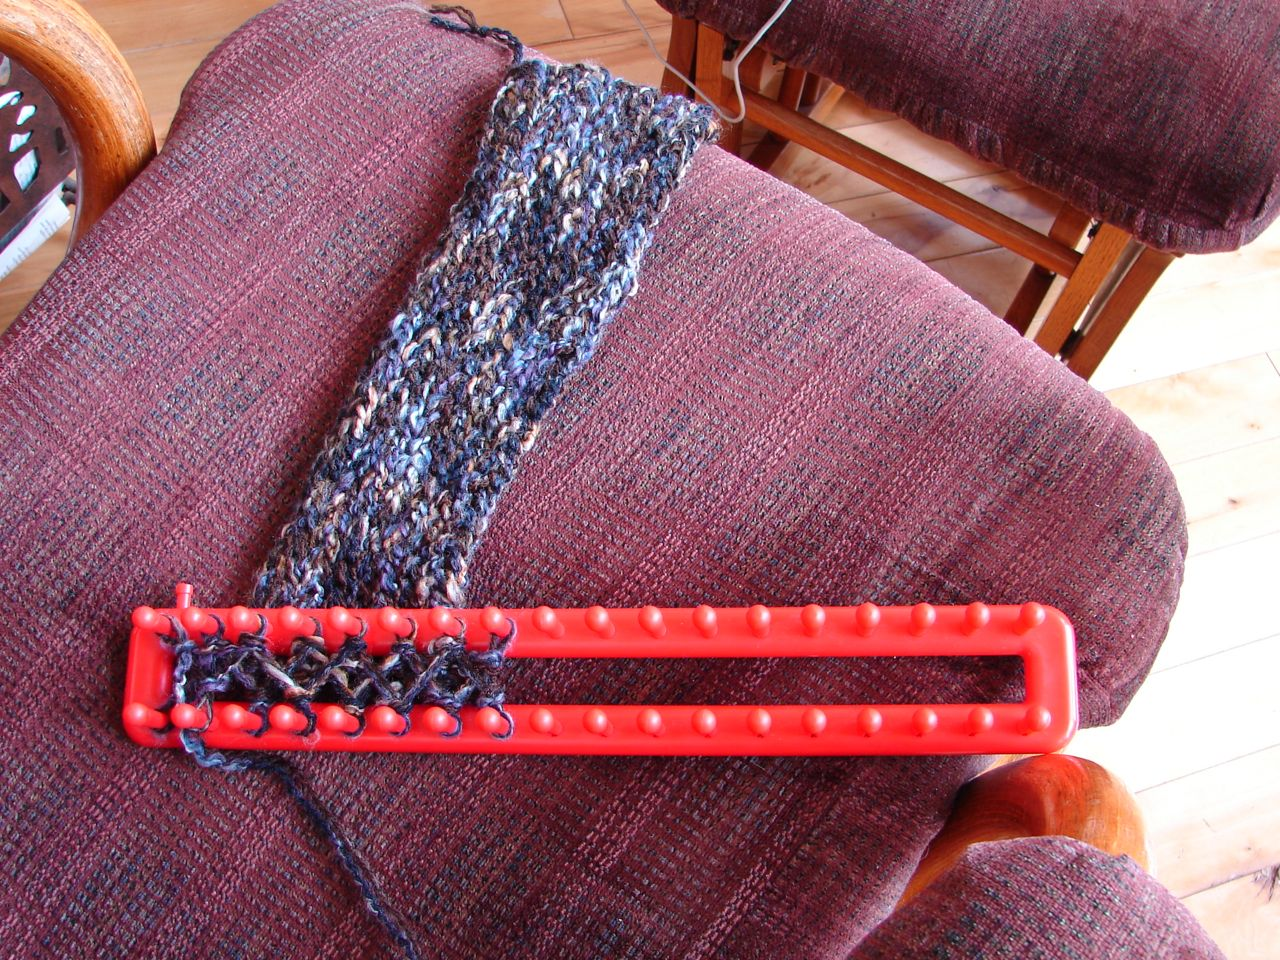 Knitting Knobby Projects : Amy s passions garden layout the knitting loom